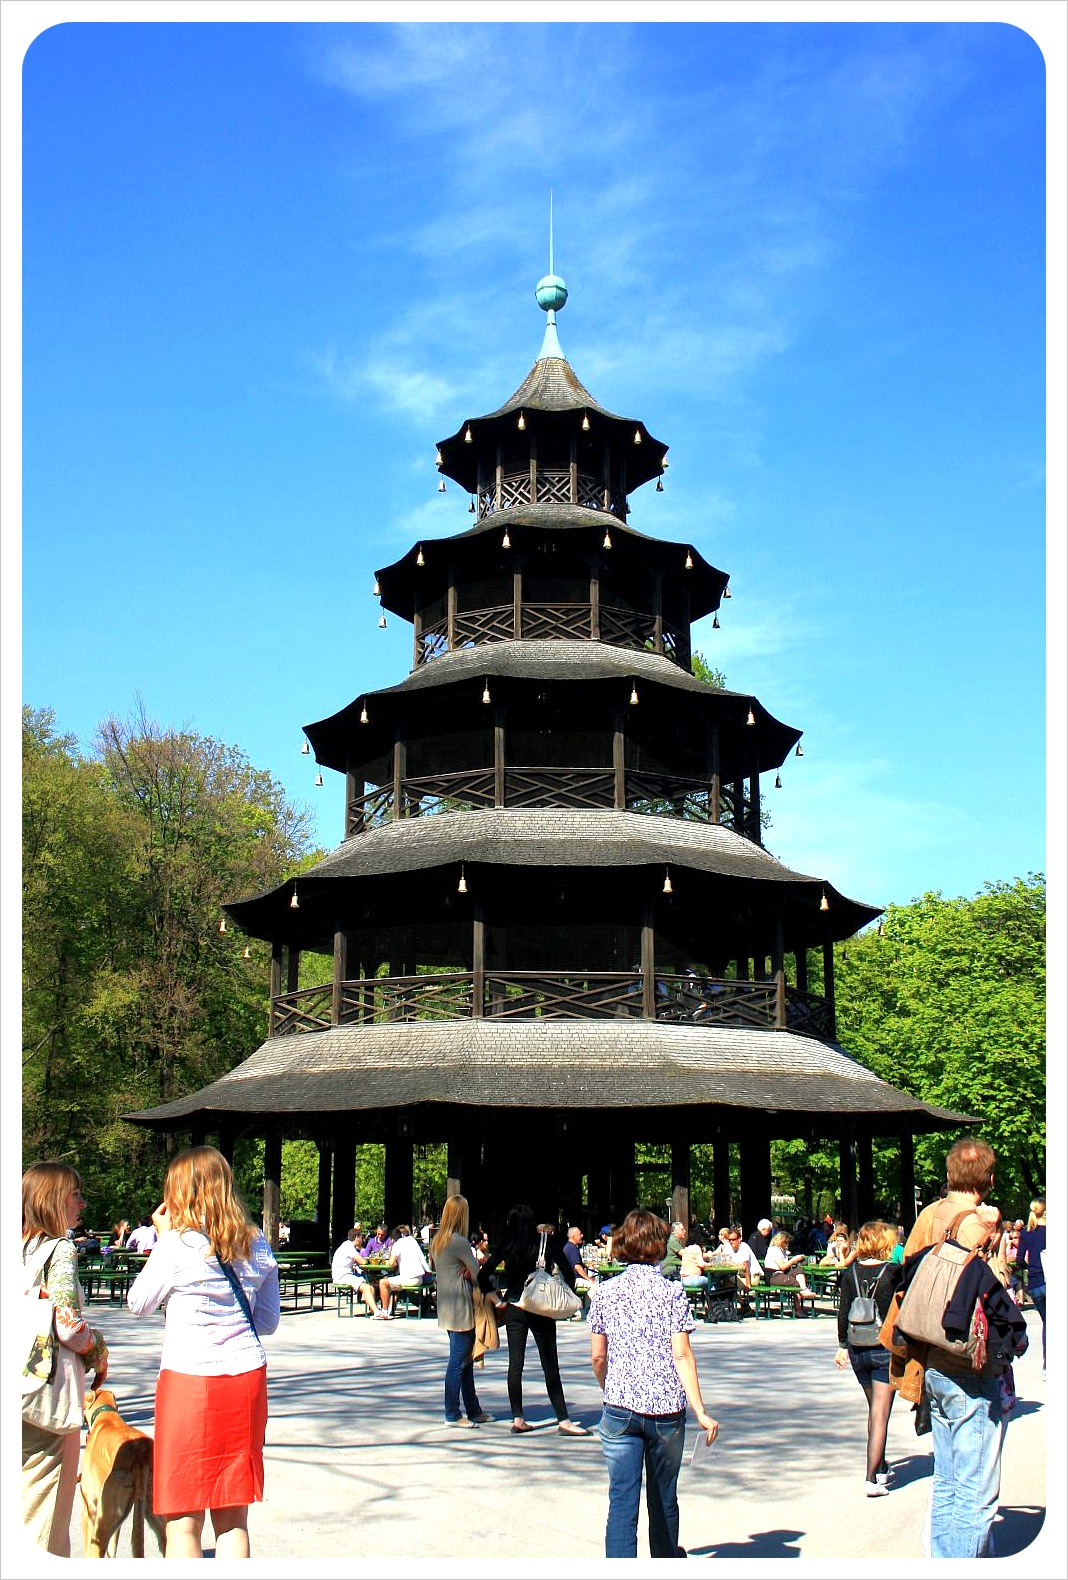 Chinese Tower in Munich